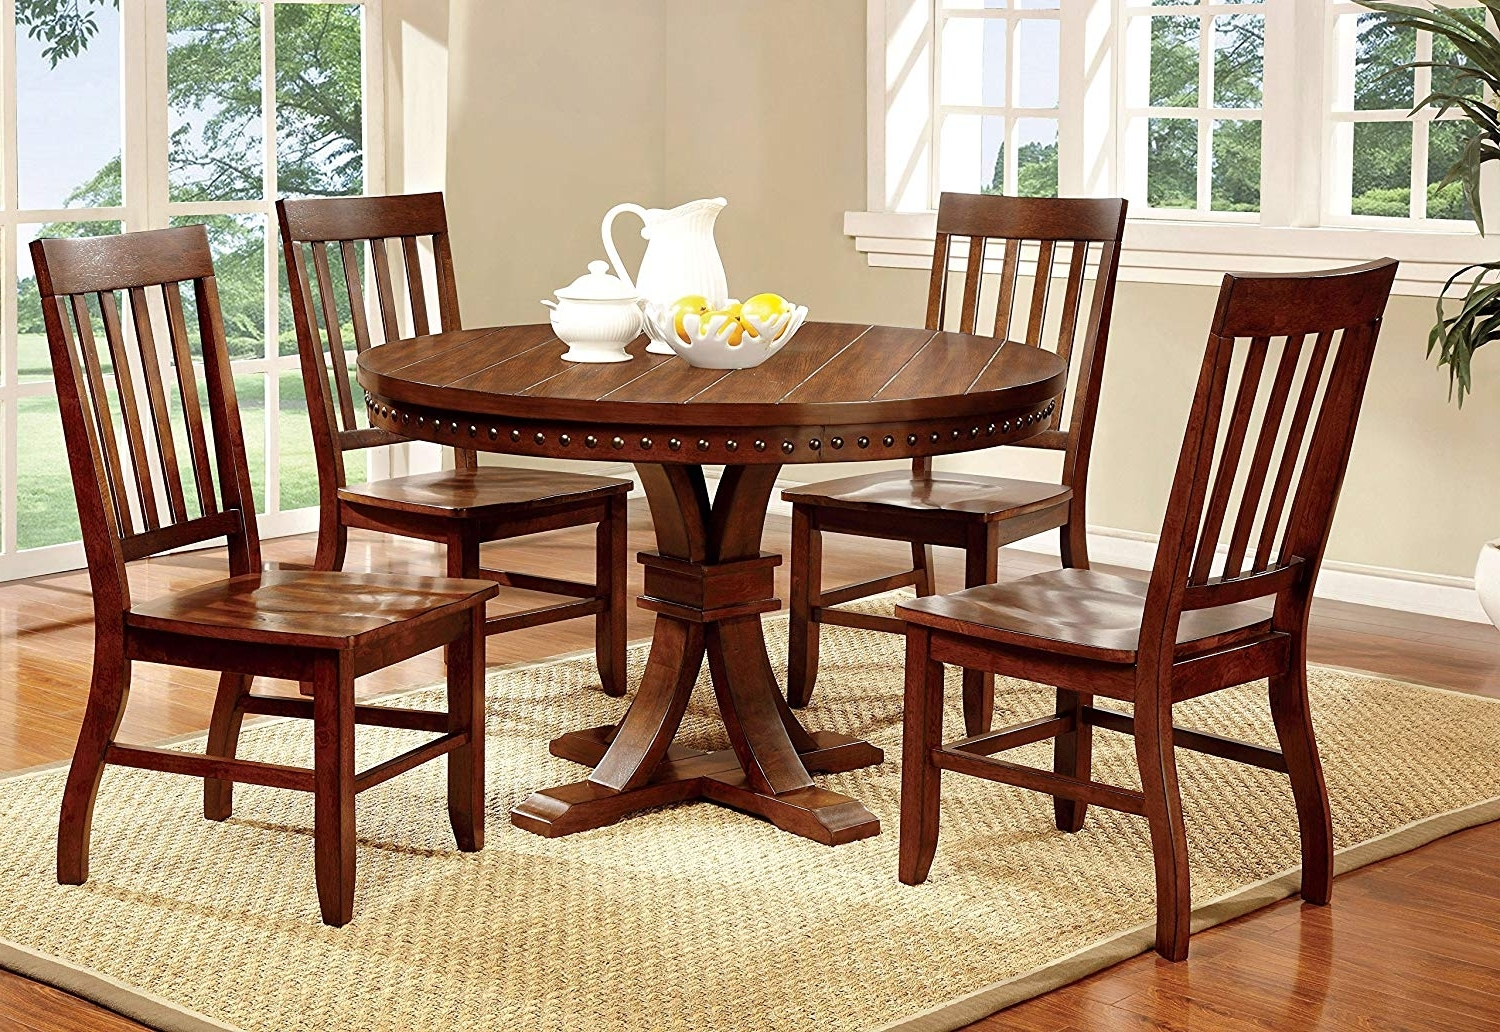 Amazon – Furniture Of America Castile 5 Piece Transitional Round Within Current Small Dark Wood Dining Tables (View 3 of 25)